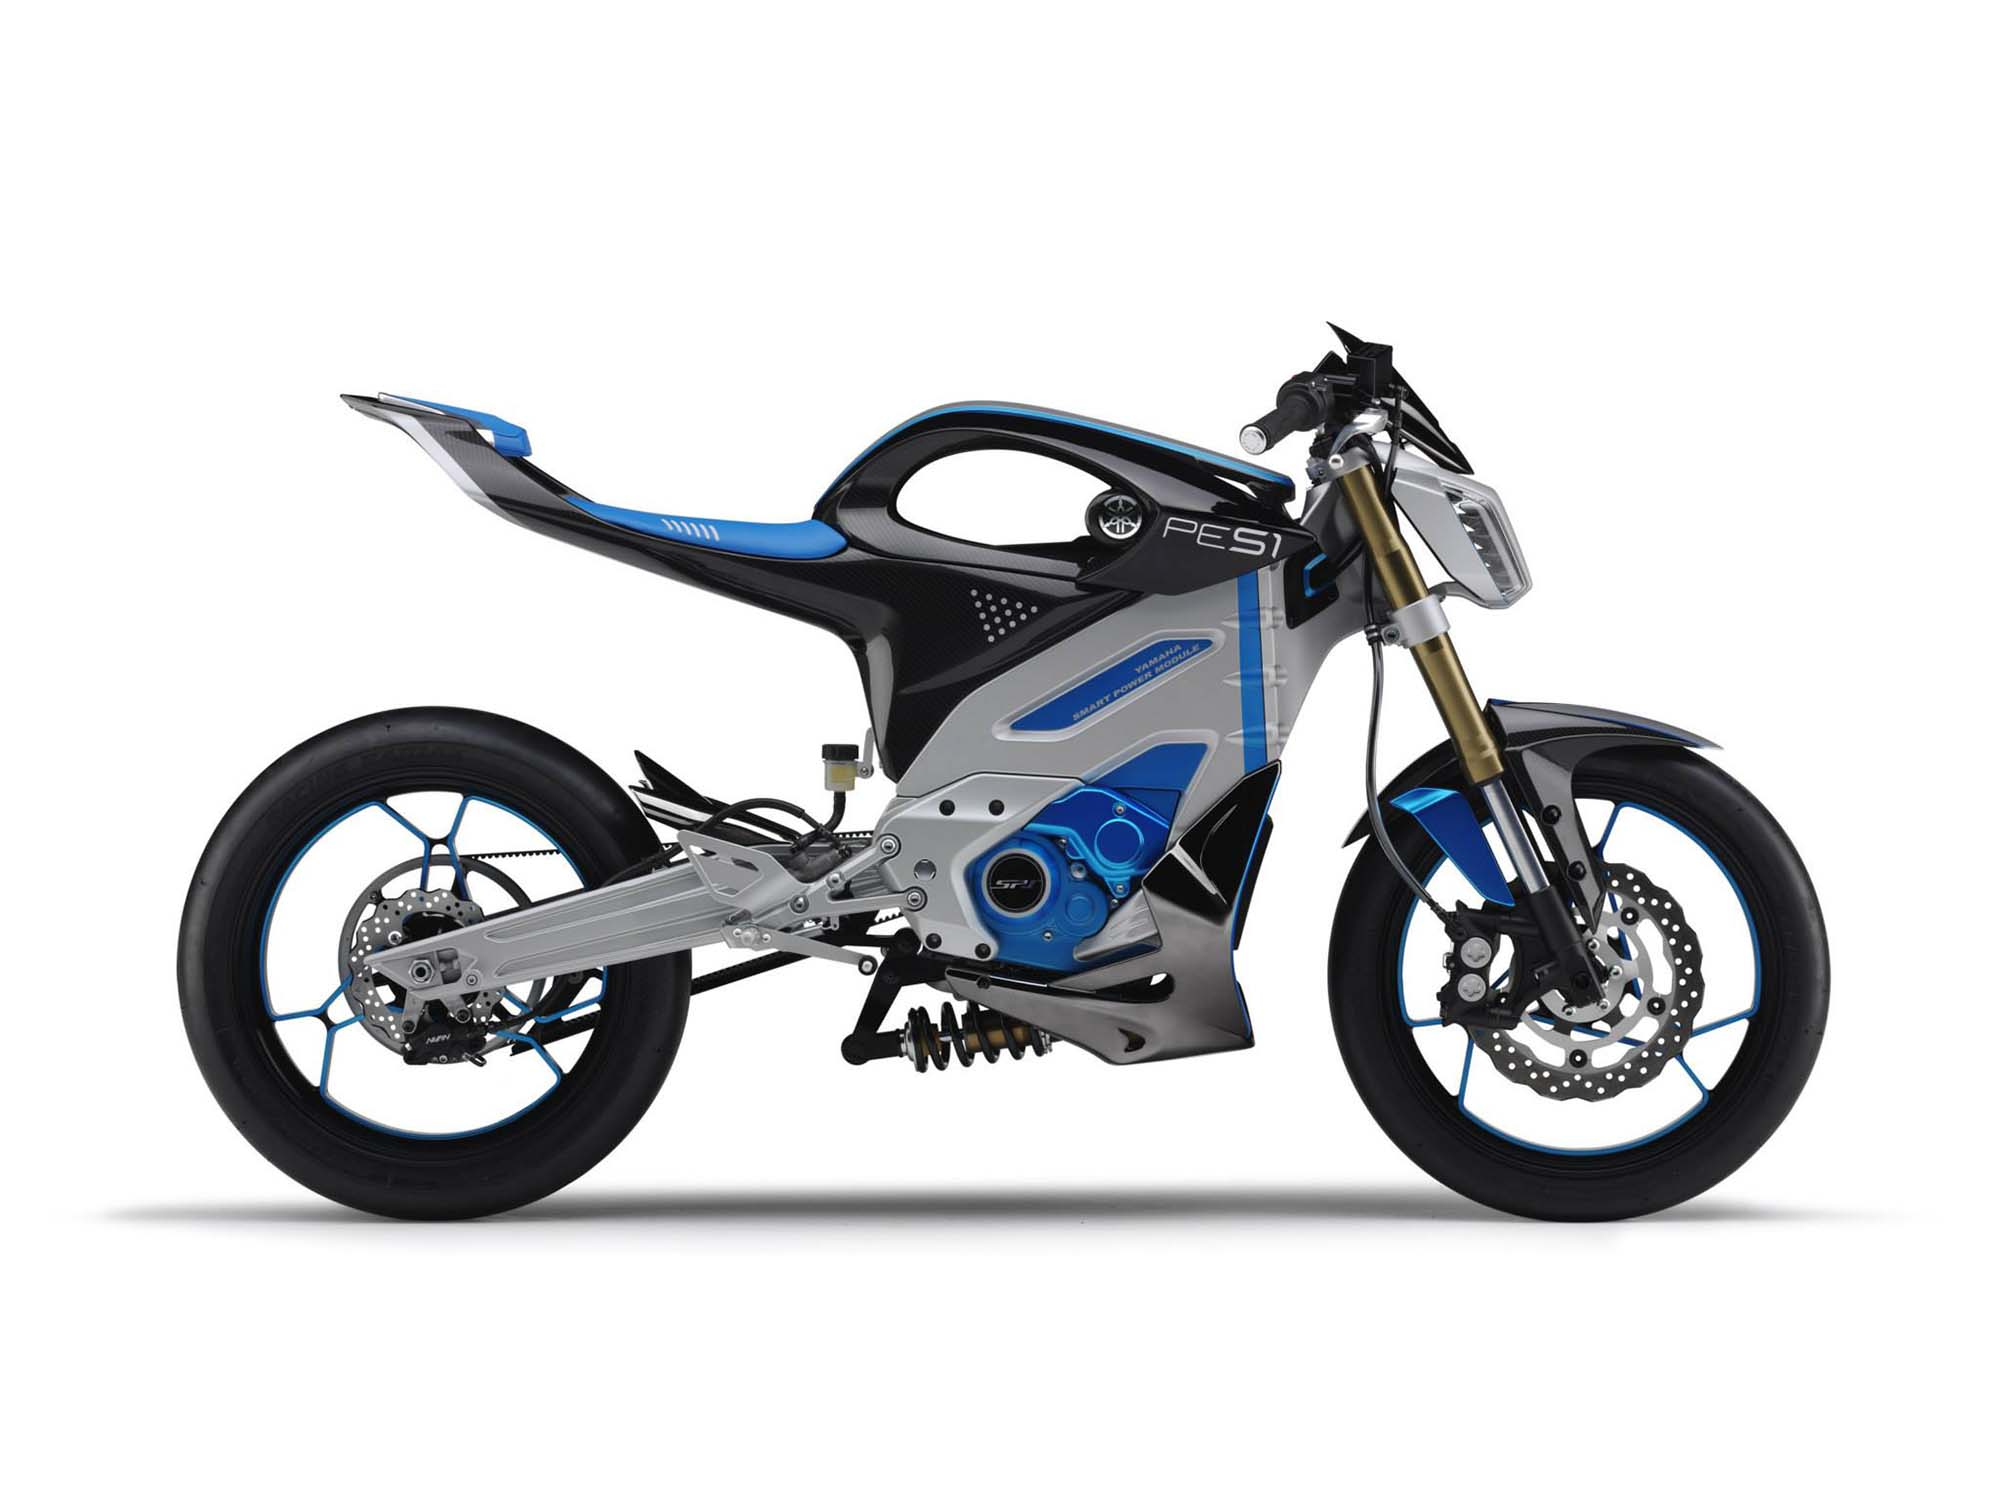 Yamaha-PES1-electric-concept-211113-2